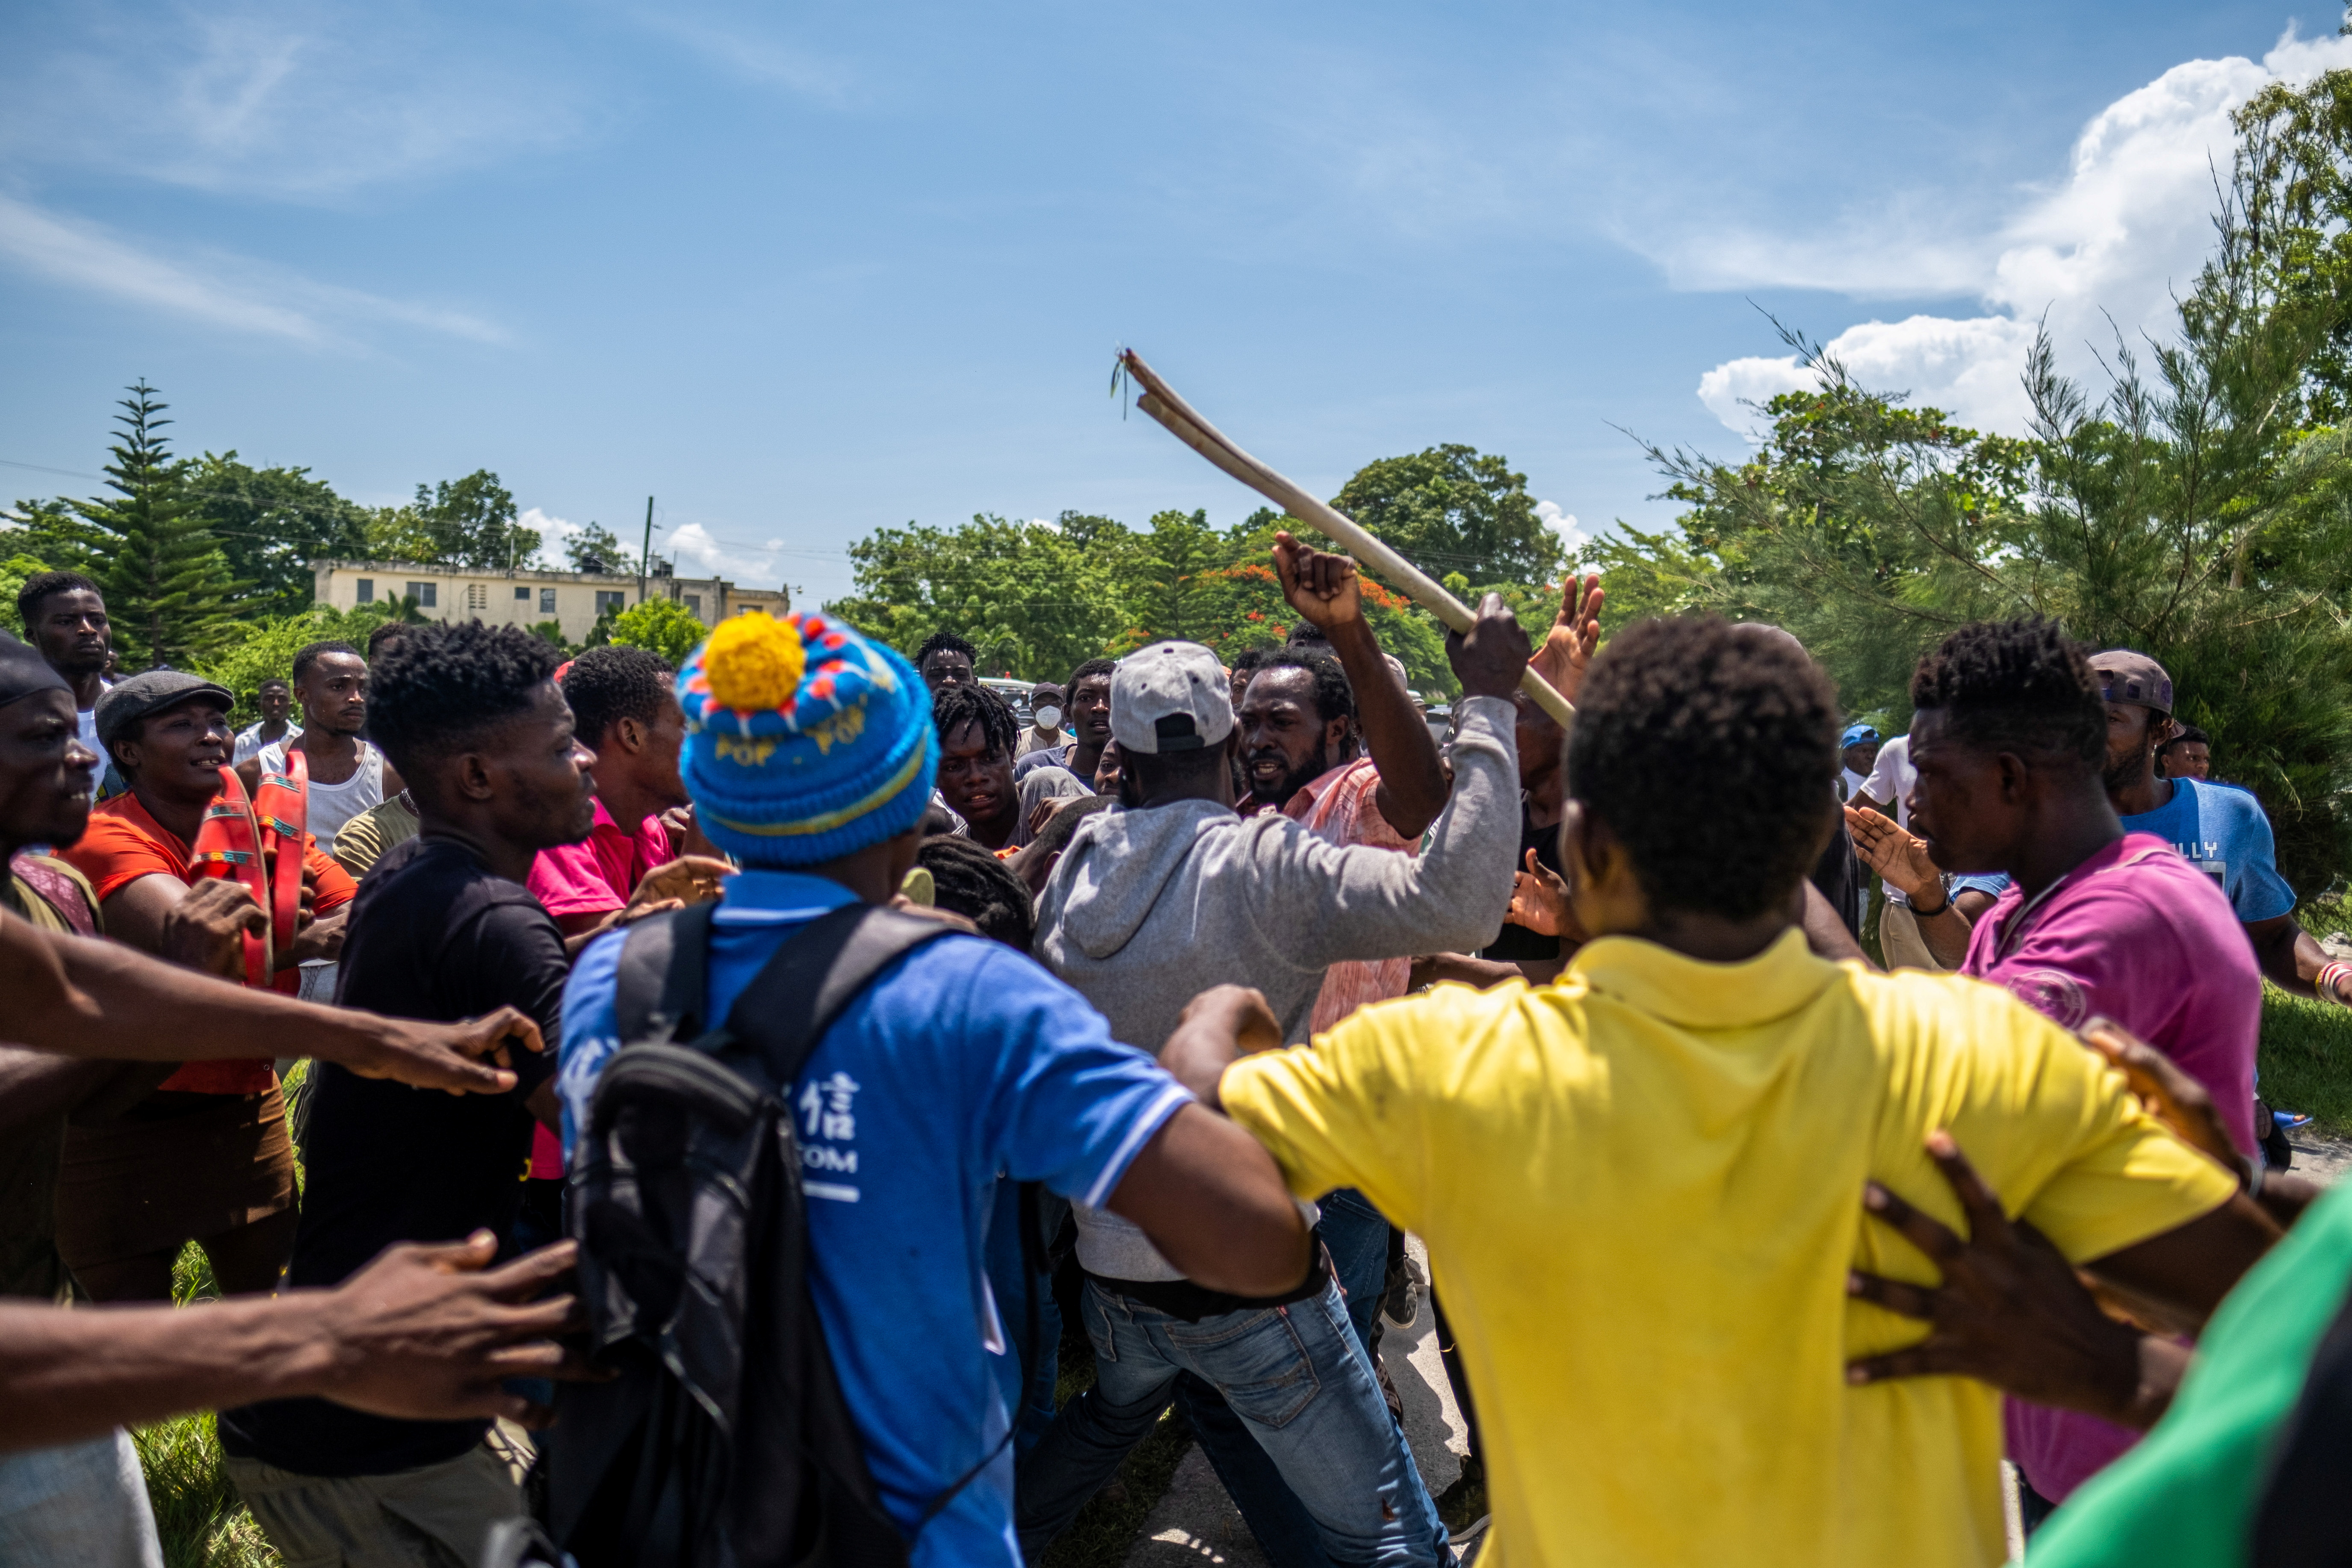 Followers of former Haitian President Michel Martelly fight over an envelope with a cash donation from a Martelly bodyguard during his departure outside the OFATMA hospital after Merely left, in Les Cayes, Haiti August 20, 2021. REUTERS/Ricardo Arduengo